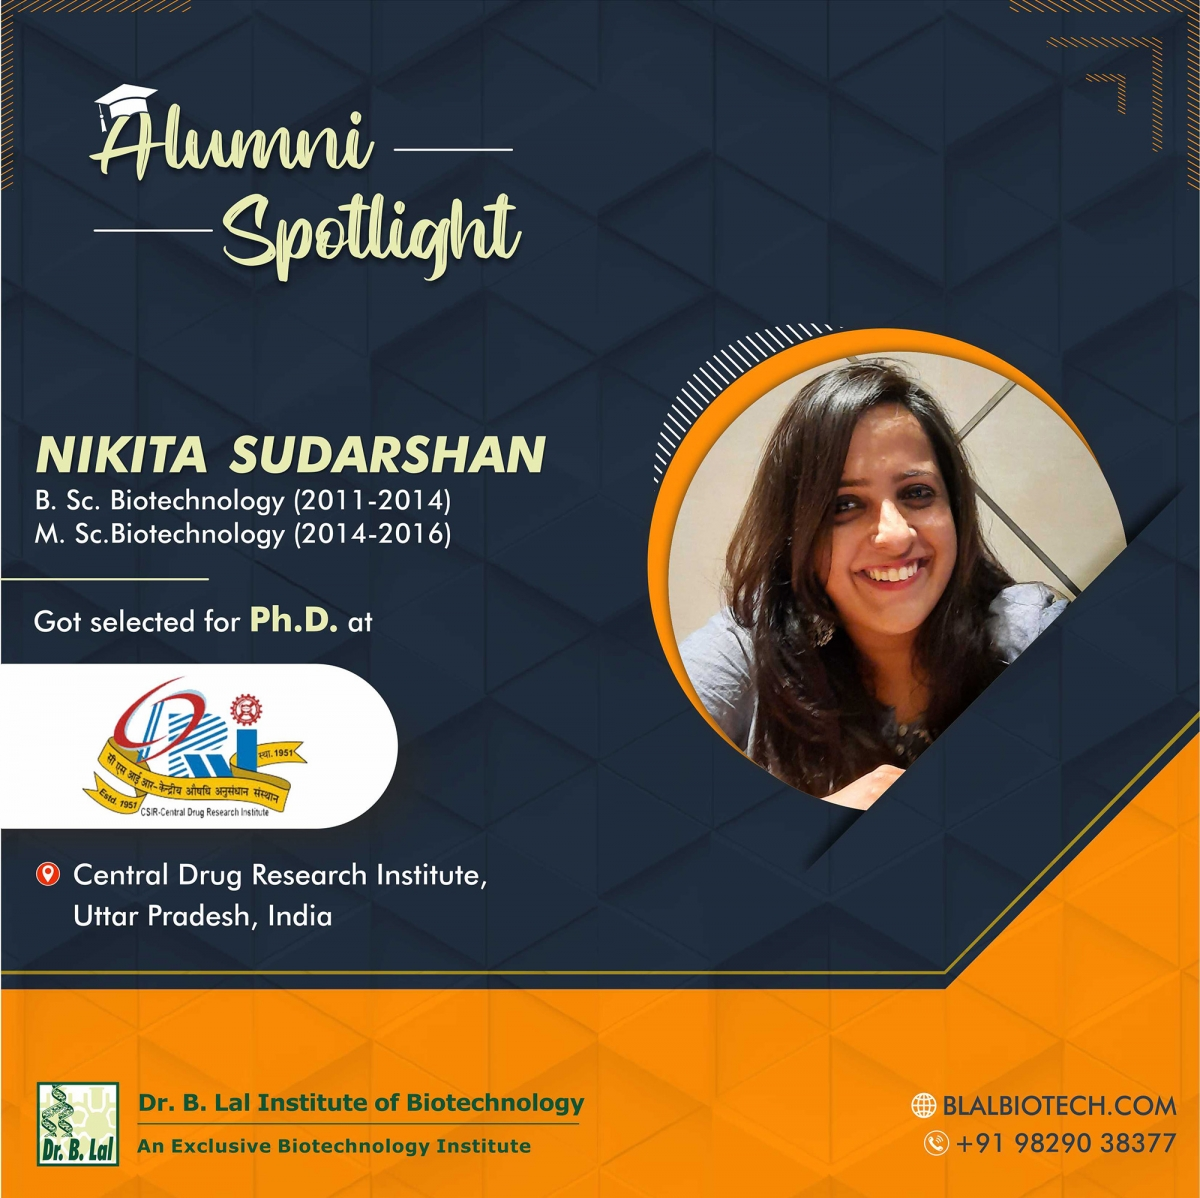 Ms. Nikita Sudarshan   Selected for Ph.D. at Central Drug Research Institute